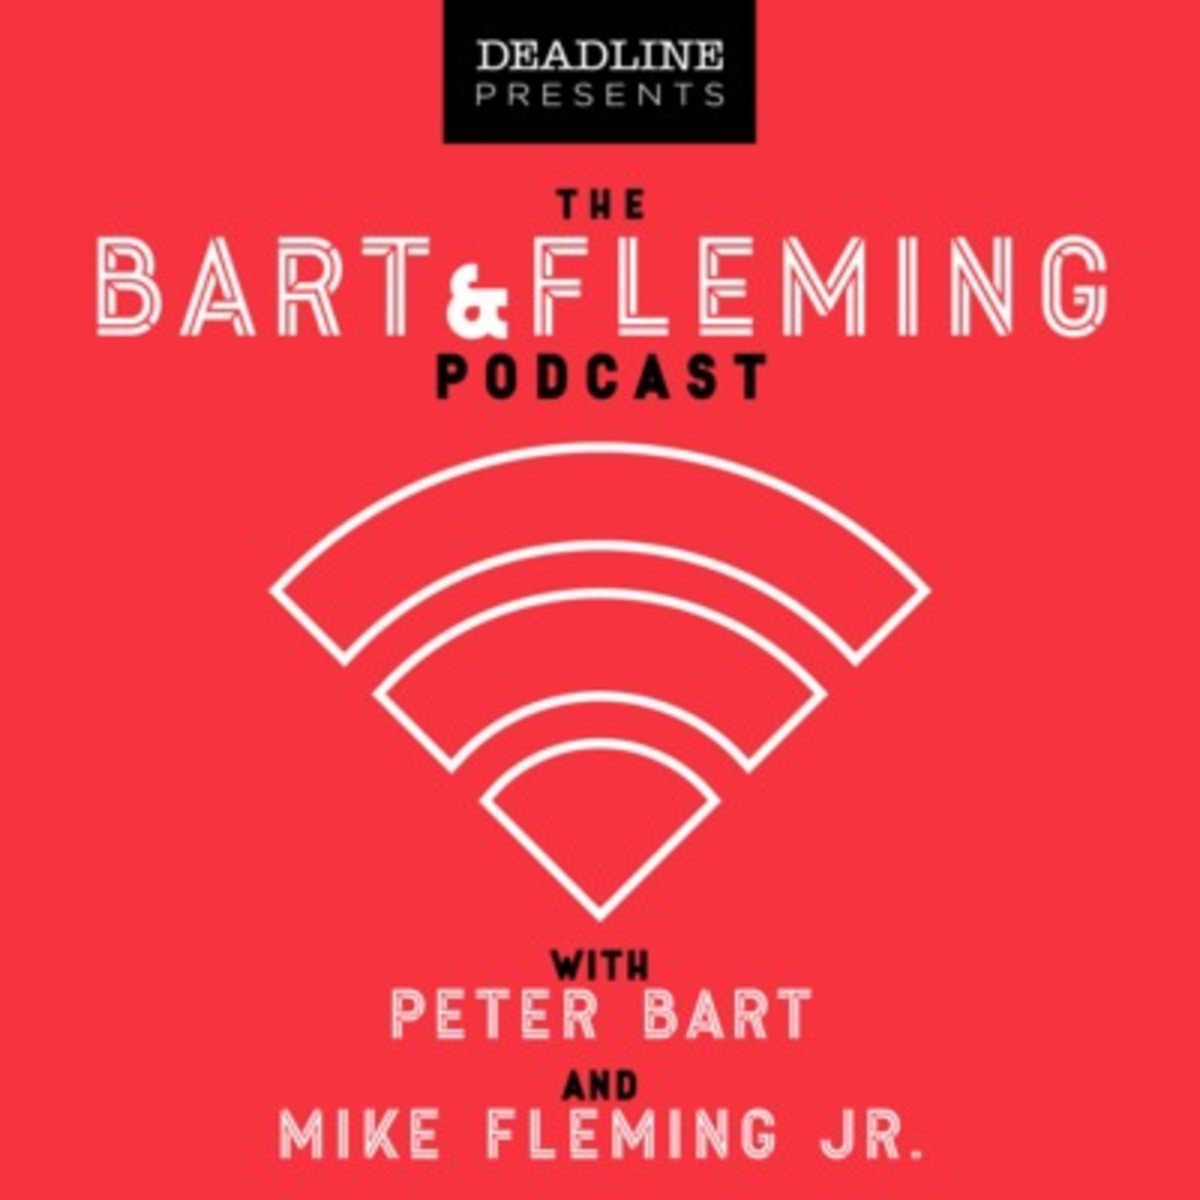 The Bart & Fleming Podcast